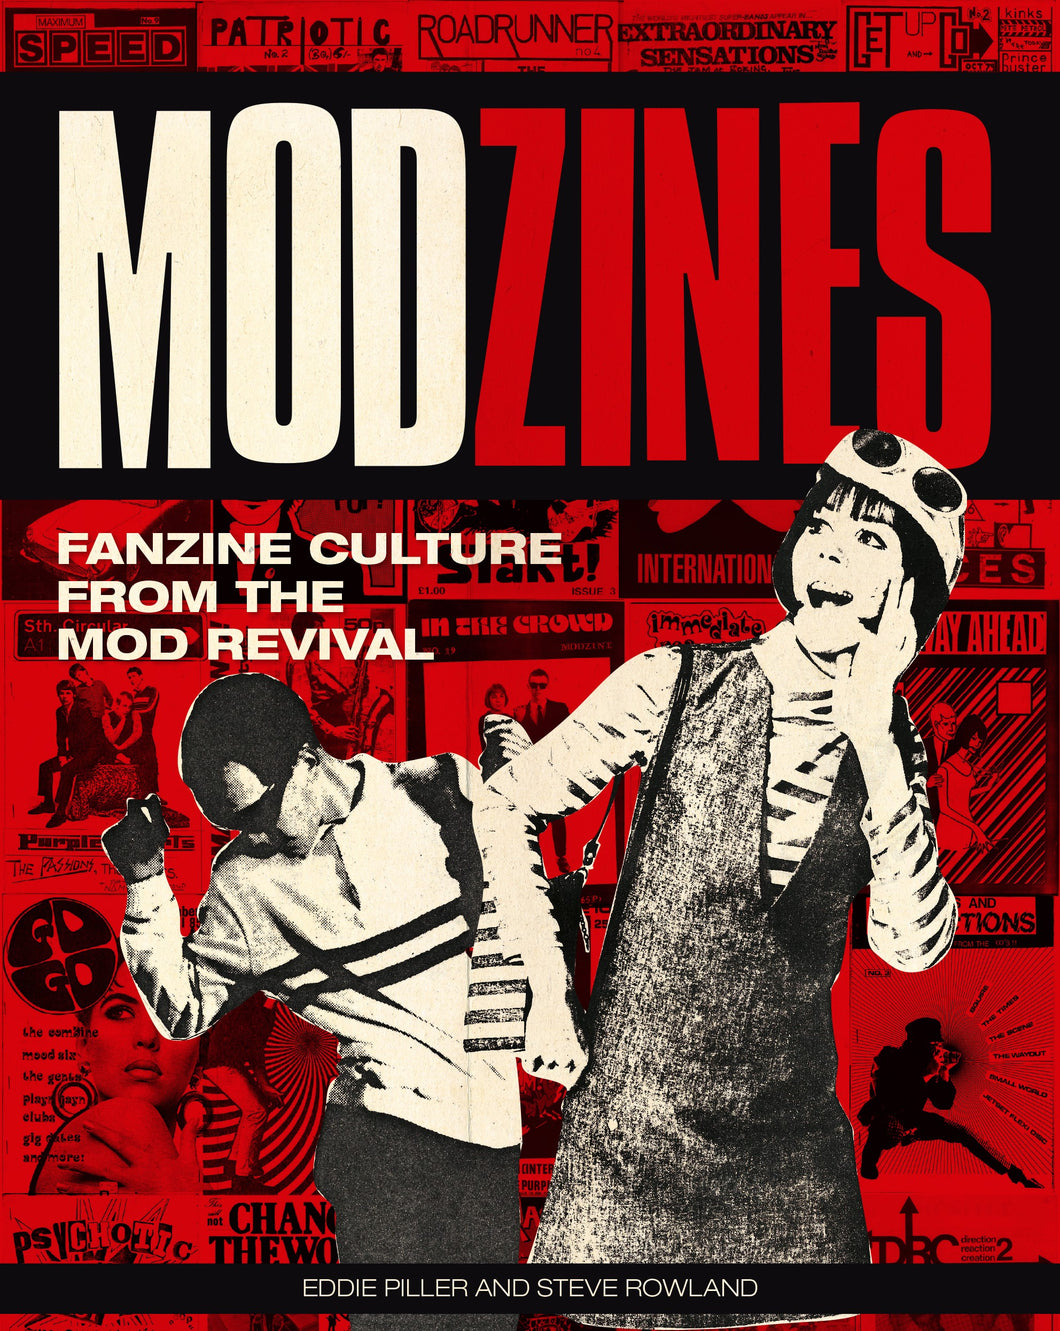 Modzines: Fanzine Culture from the Mod Revival